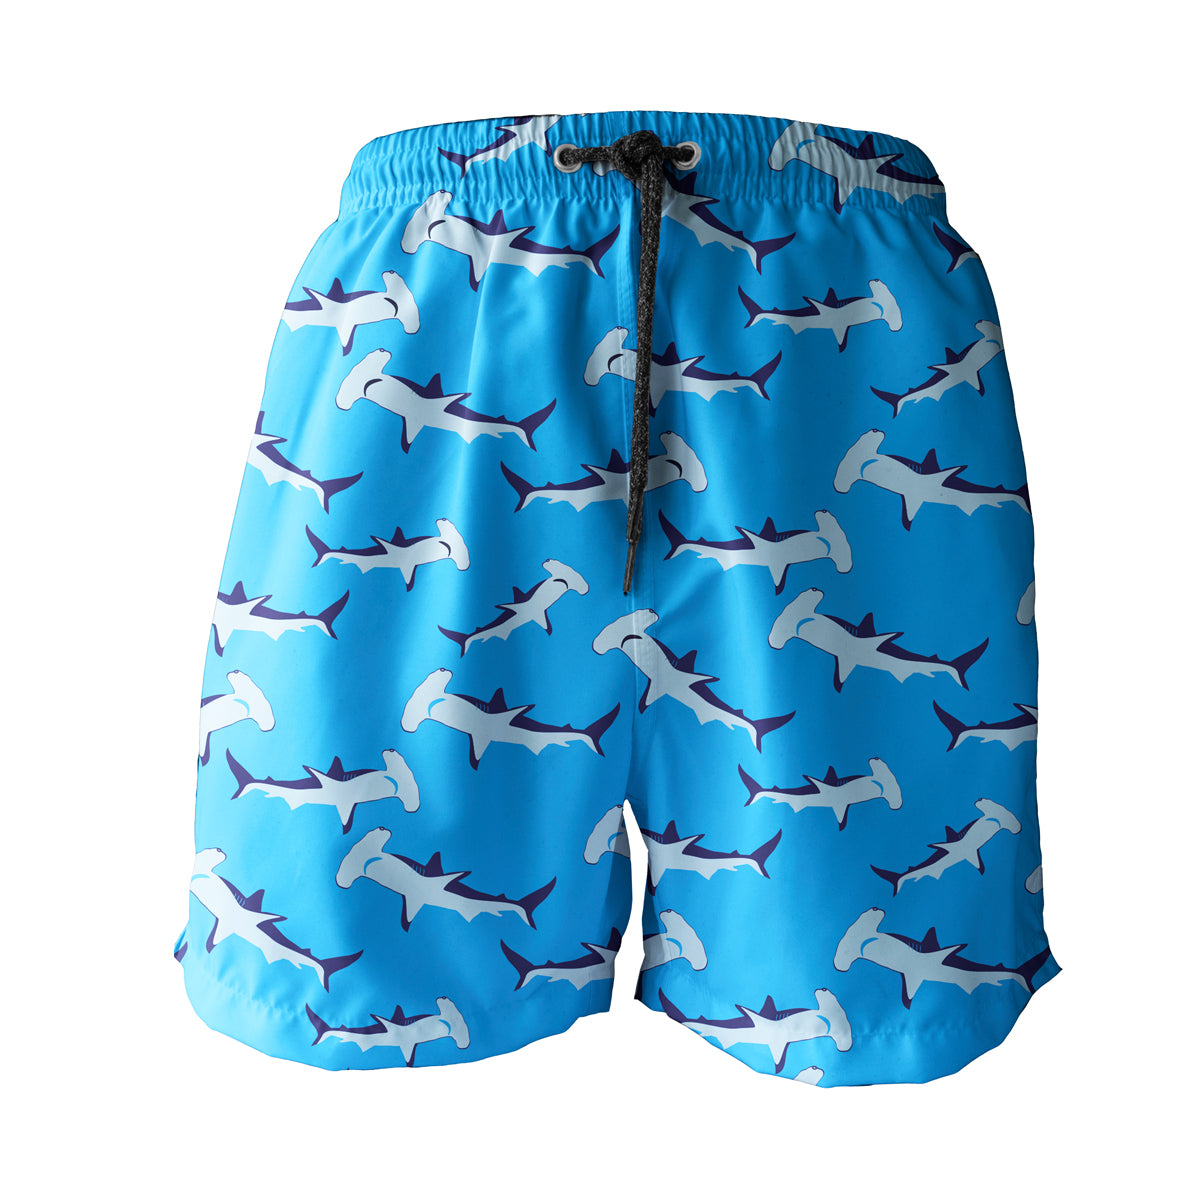 Squali Swim Trunk - Men